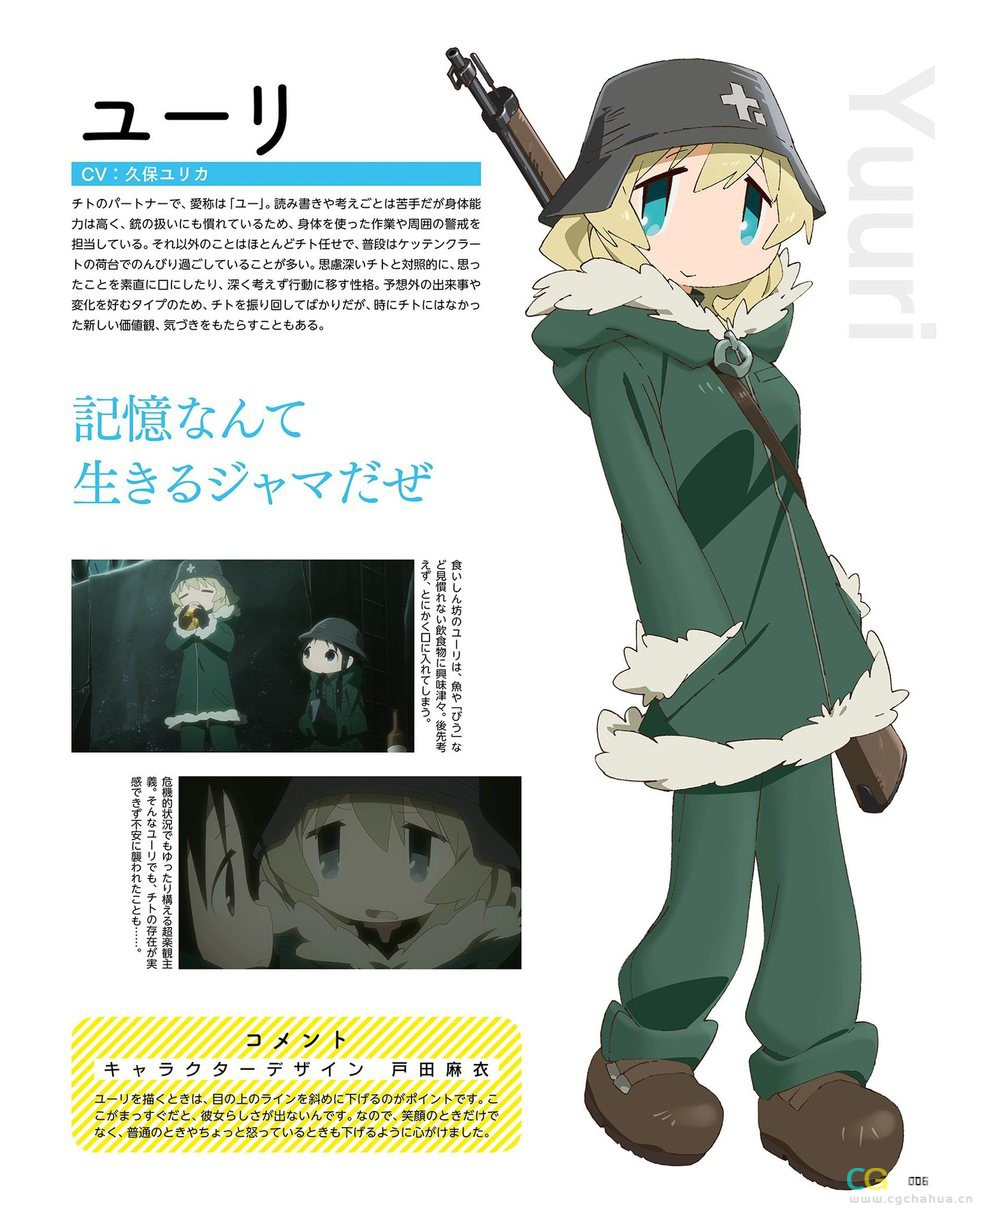 《少女终末旅行(Girls Last Tour)》 (4).jpg